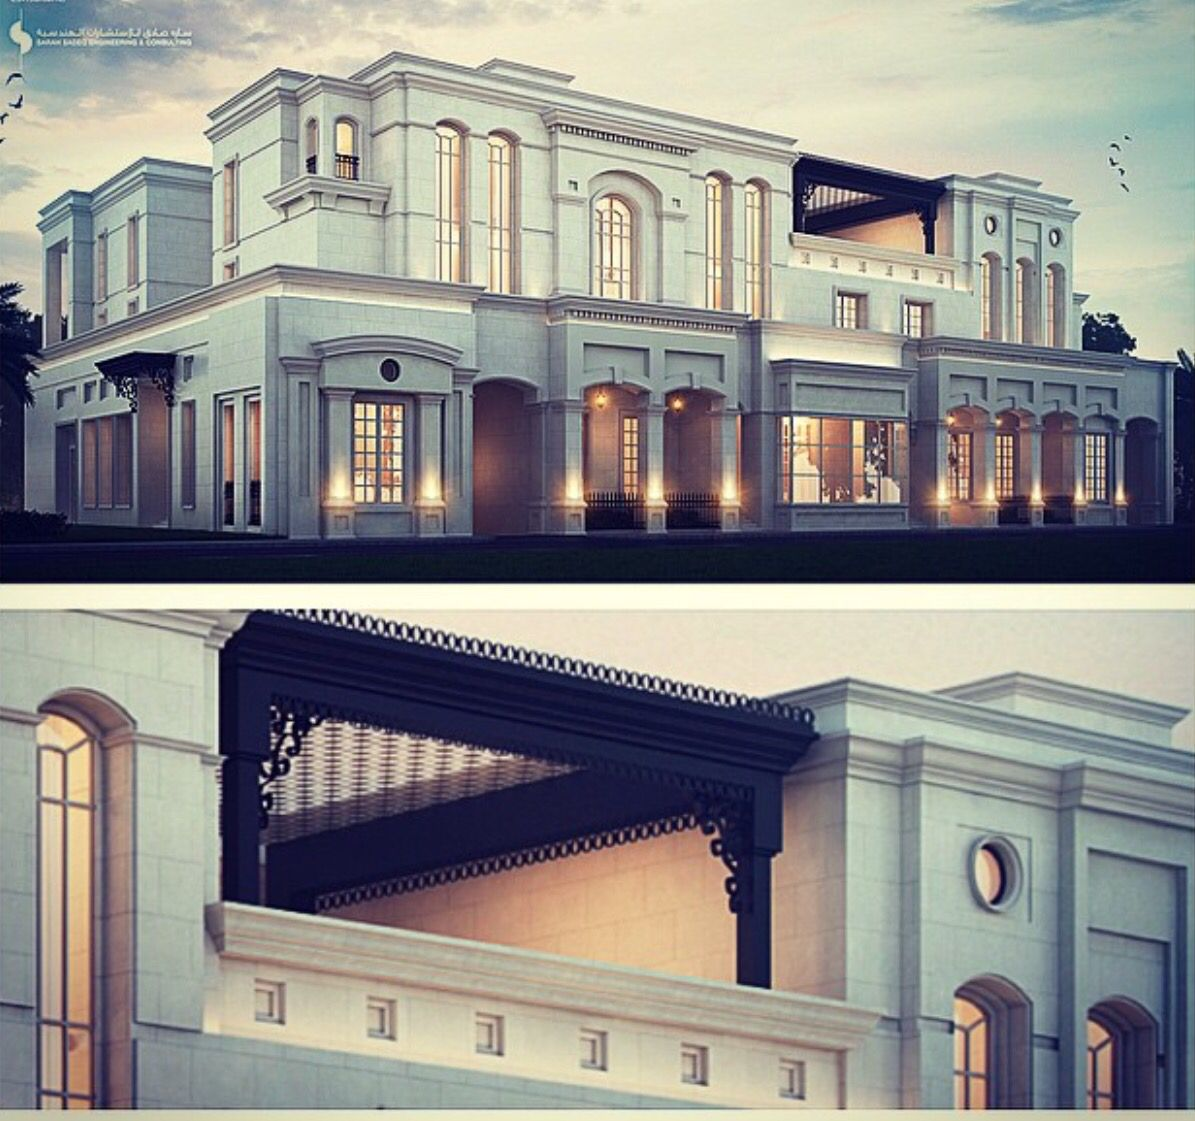 Private Villa Sarah Sadeq Architects Kuwait: 2000 M Classic Private Villa Kuwait Sarah Sadeq Architects